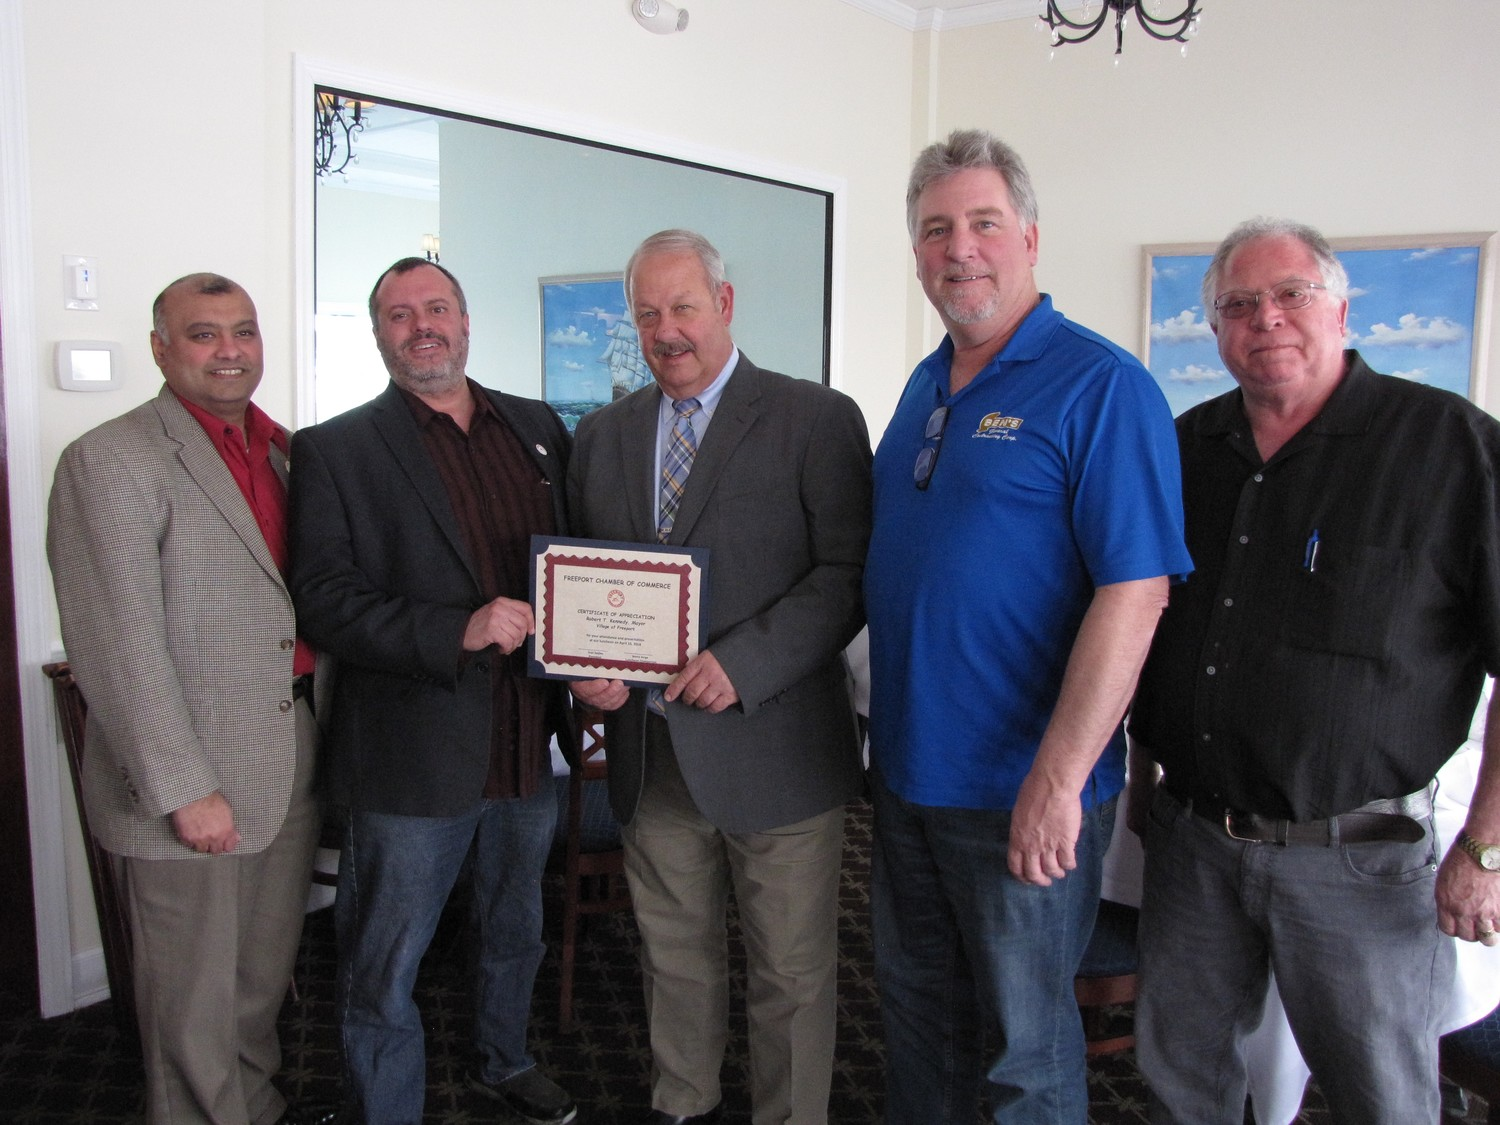 Freeport Mayor Robert Kennedy, center, received a citation from Chamber of Commerce members, from left, Ken Dookram, President Ivan Sayles, Ben Jackson and Thomas Dipolito at a luncheon on the Nautical Mile on Tuesday.